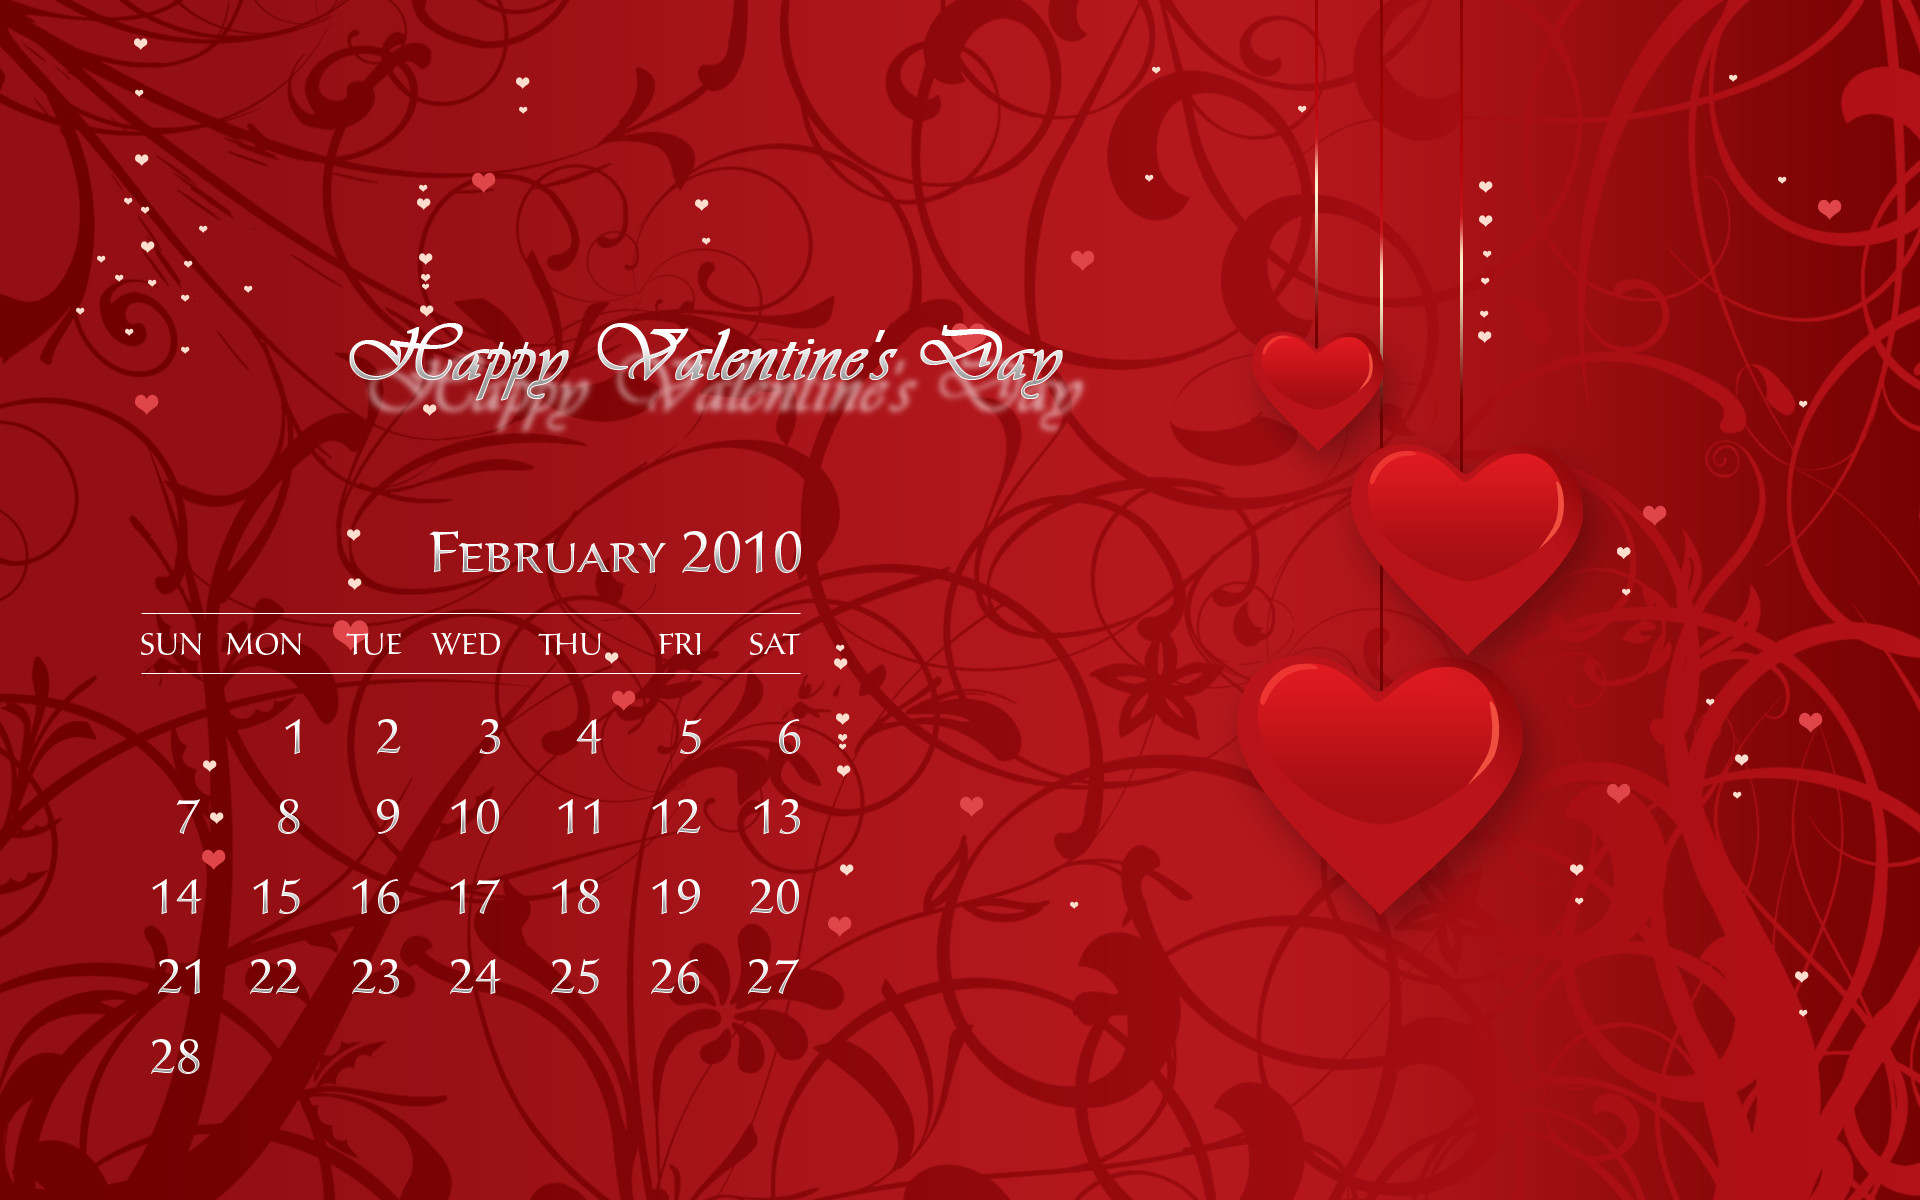 1920x1200 Pictures of Valentine HD, , 12.10.14